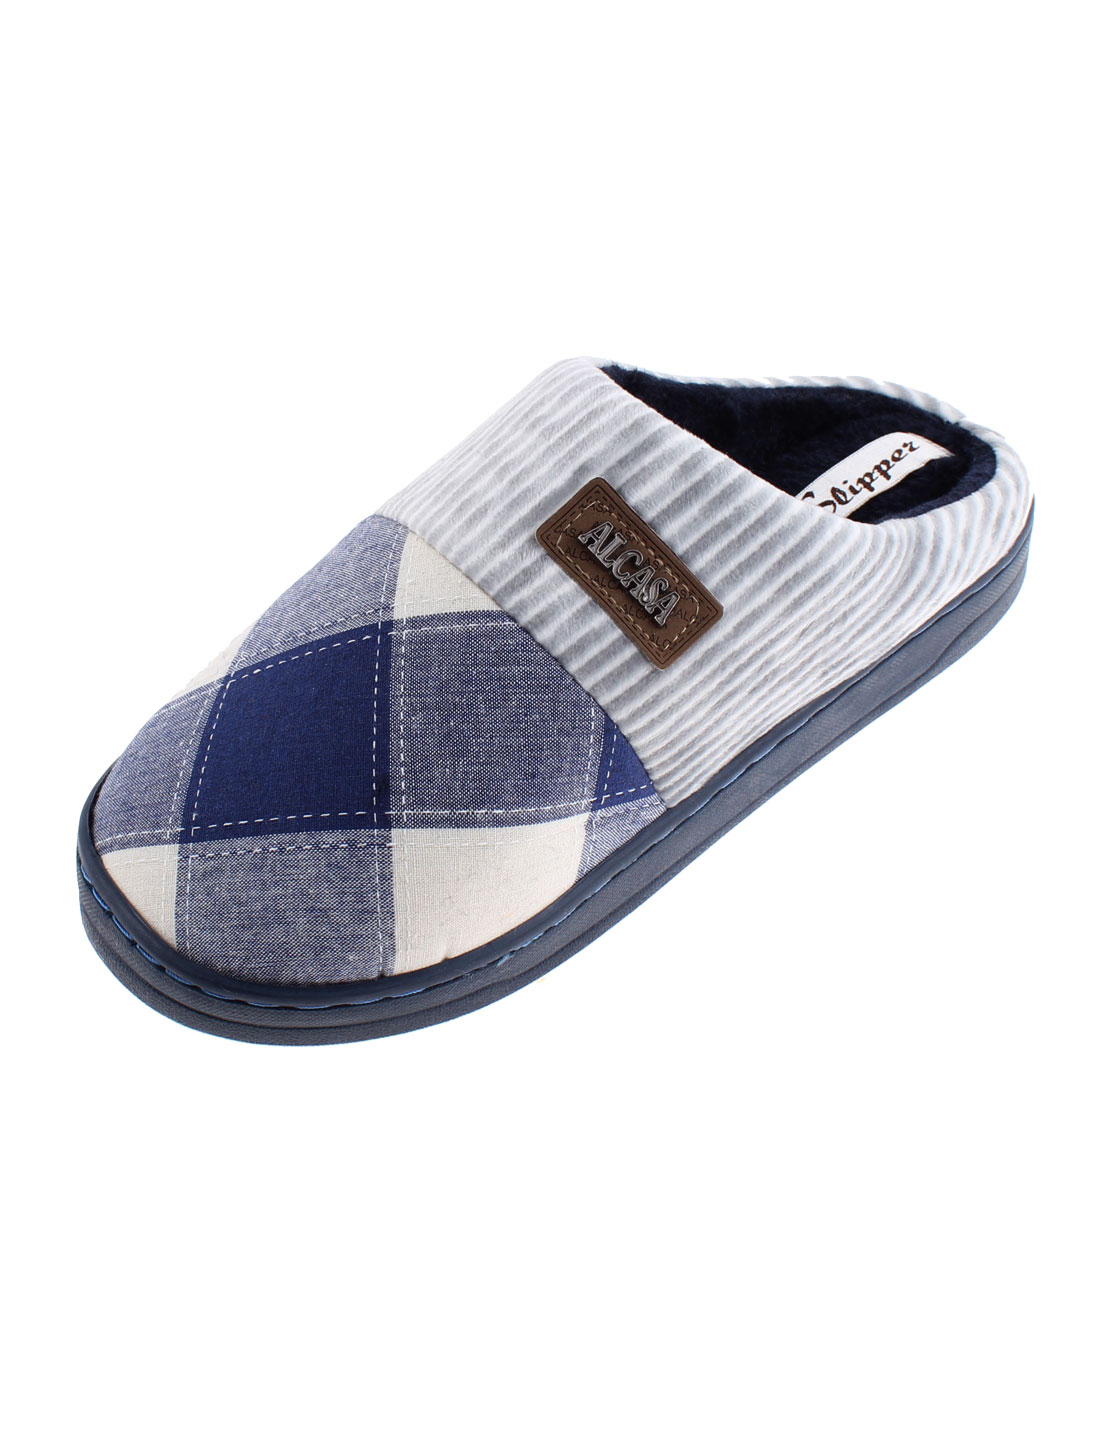 Women Grid Pattern Non-skid Sole Warmer Cotton Slippers Blue US 9.5